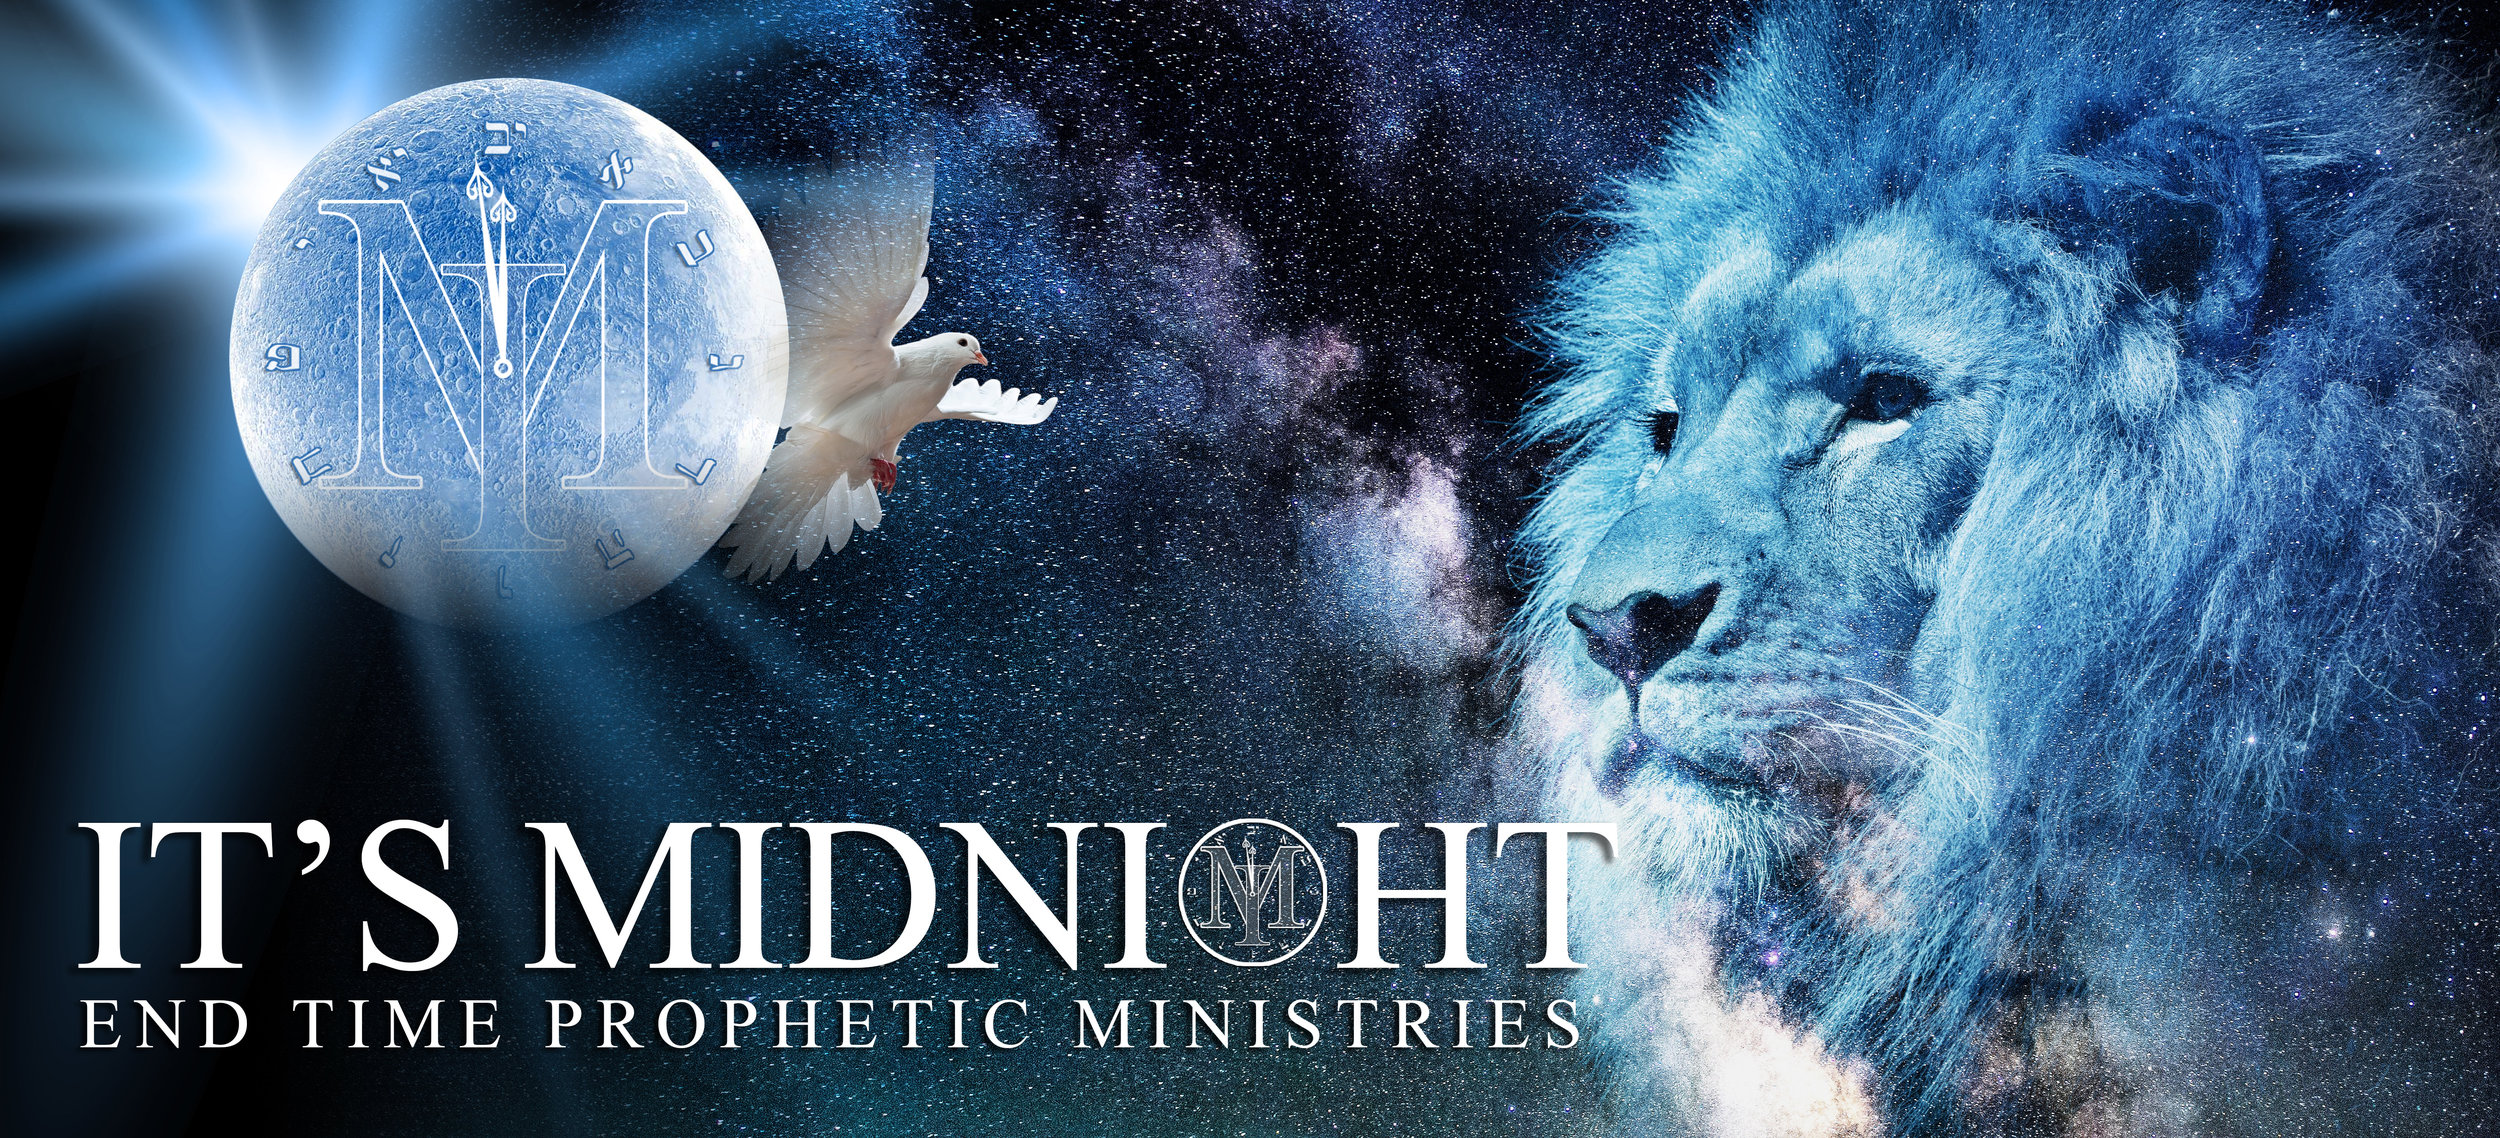 It's Midnight Ministries - Mailchimp Banner.jpg